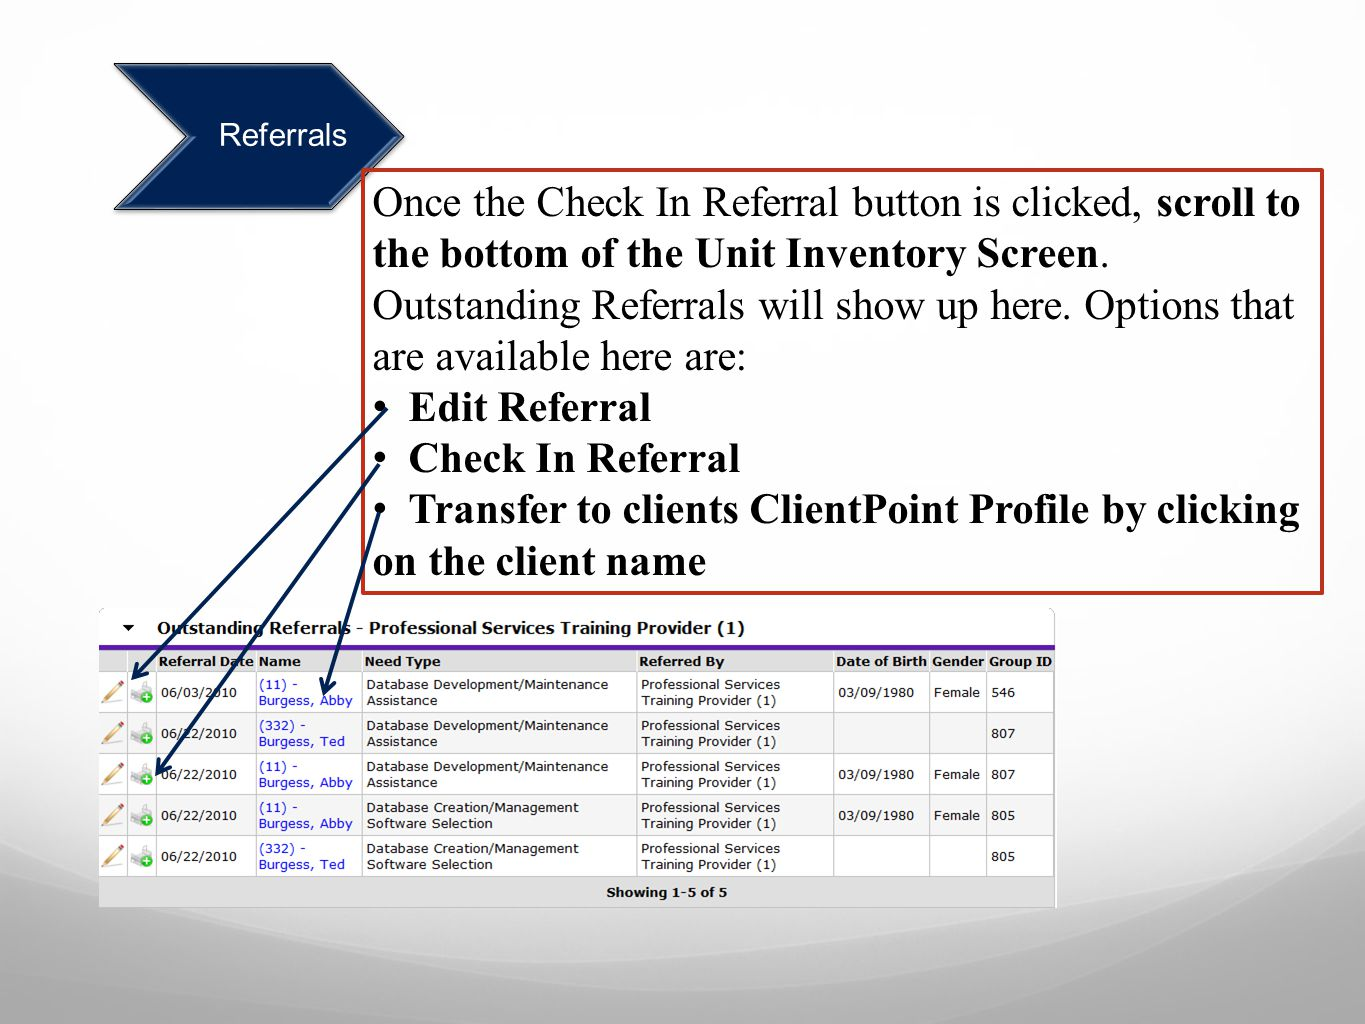 Transfer to clients ClientPoint Profile by clicking on the client name